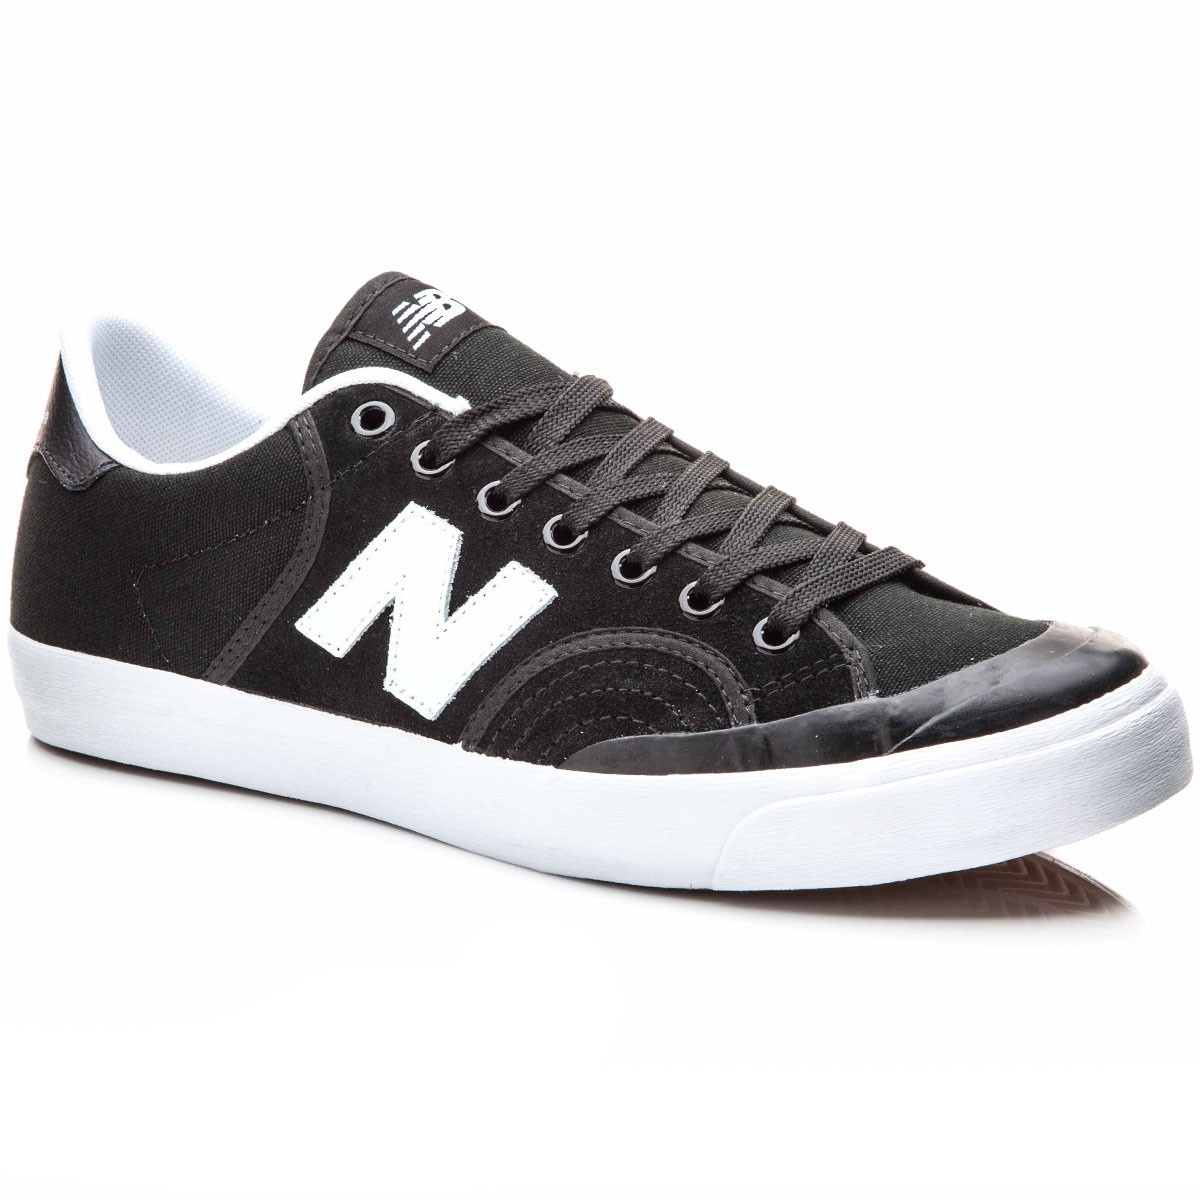 Where To Buy New Balance Shoes In Portland Oregon